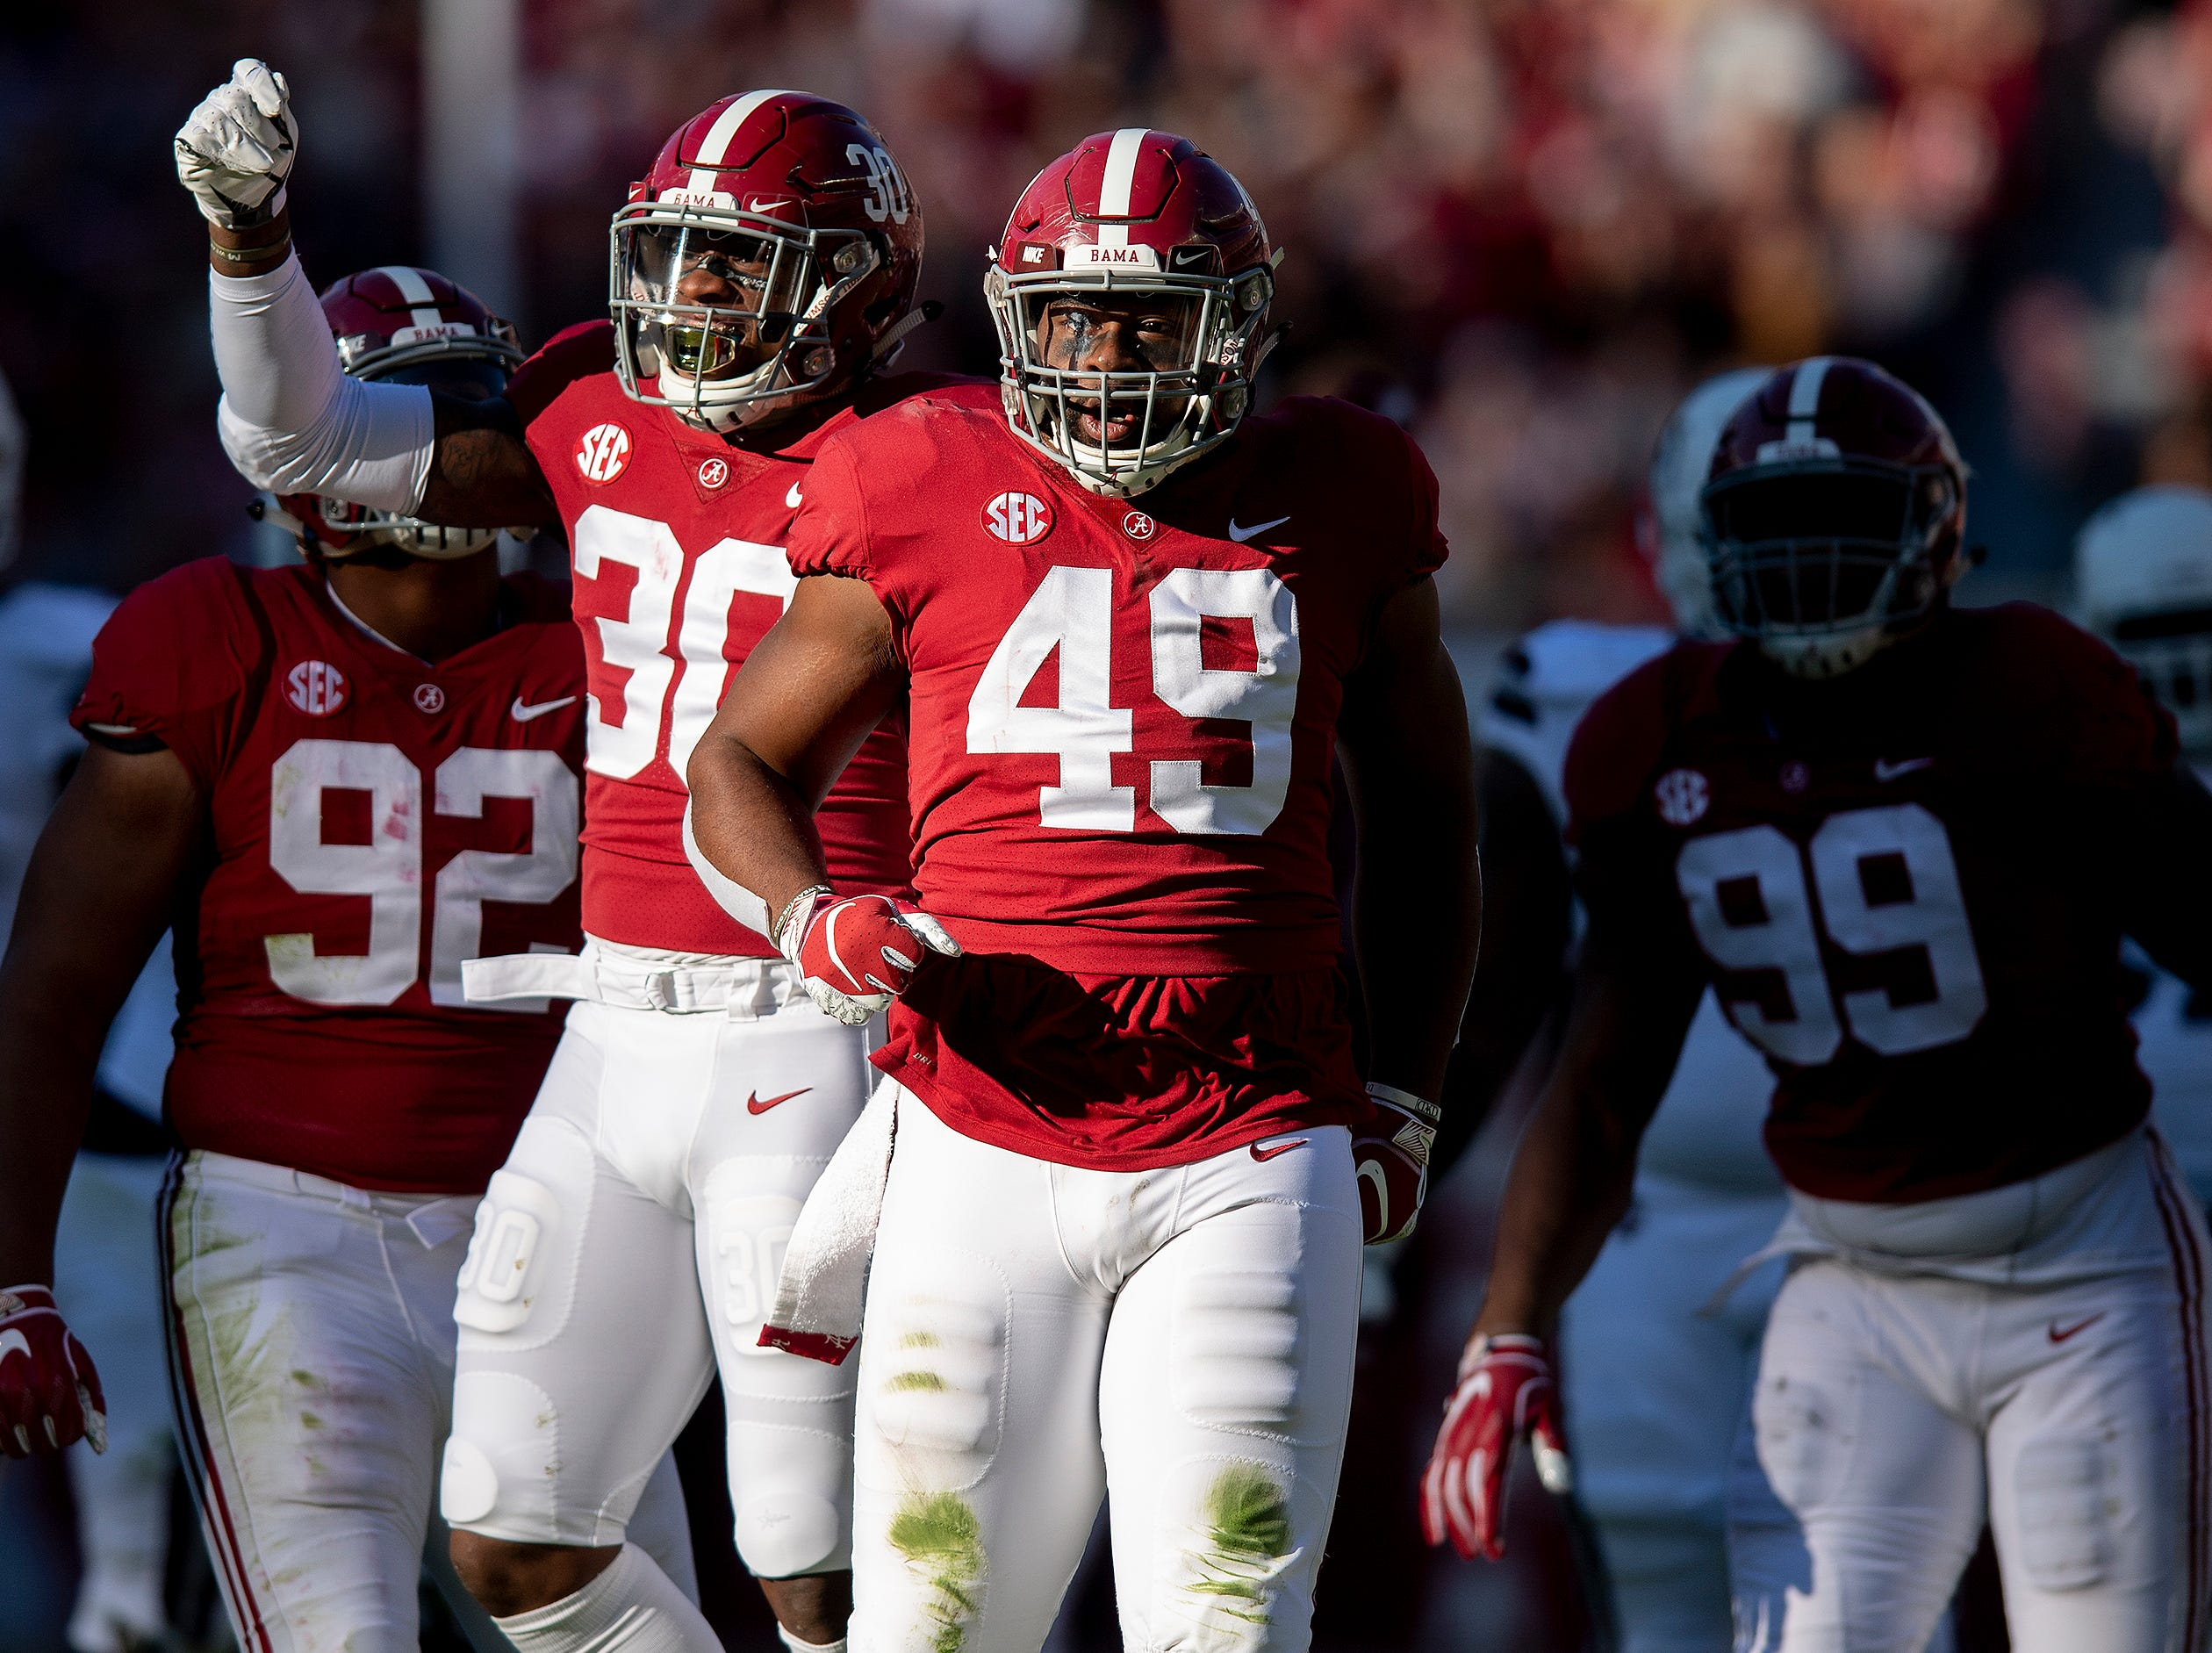 Alabama linebacker Mack Wilson (30) and defensive lineman Isaiah Buggs (49) celebrate a tackle for loss against Mississippi State University in first half action at Bryant Denny Stadium in Tuscaloosa, Ala., on Saturday November 9, 2018.